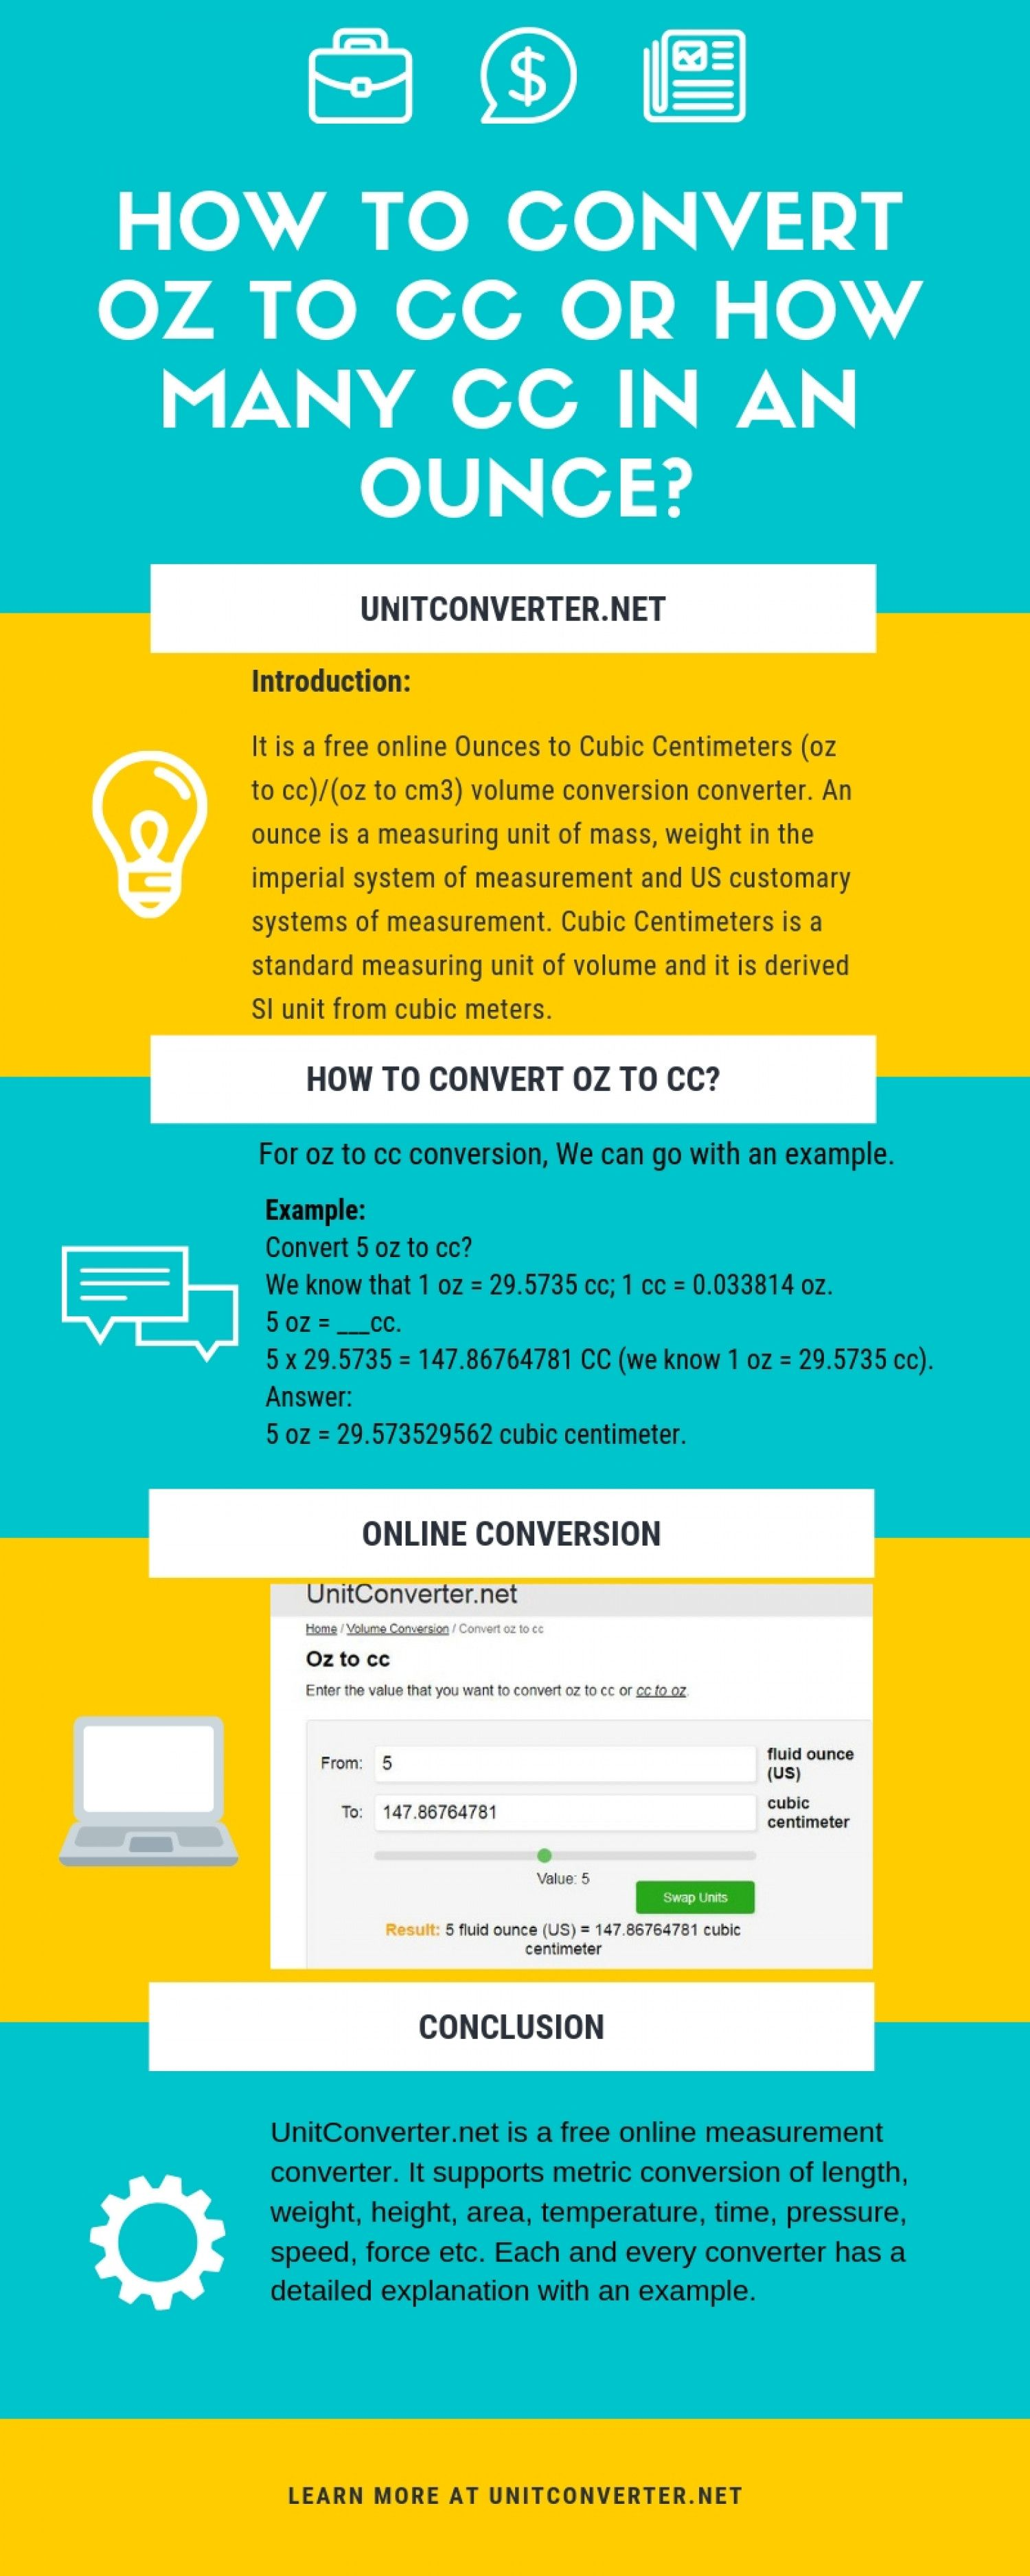 How To Convert Oz Cc Or Many In An Ounce Infographic Converter Nursing School Studying Ounces Paraphrasing Tool Spinbot Download